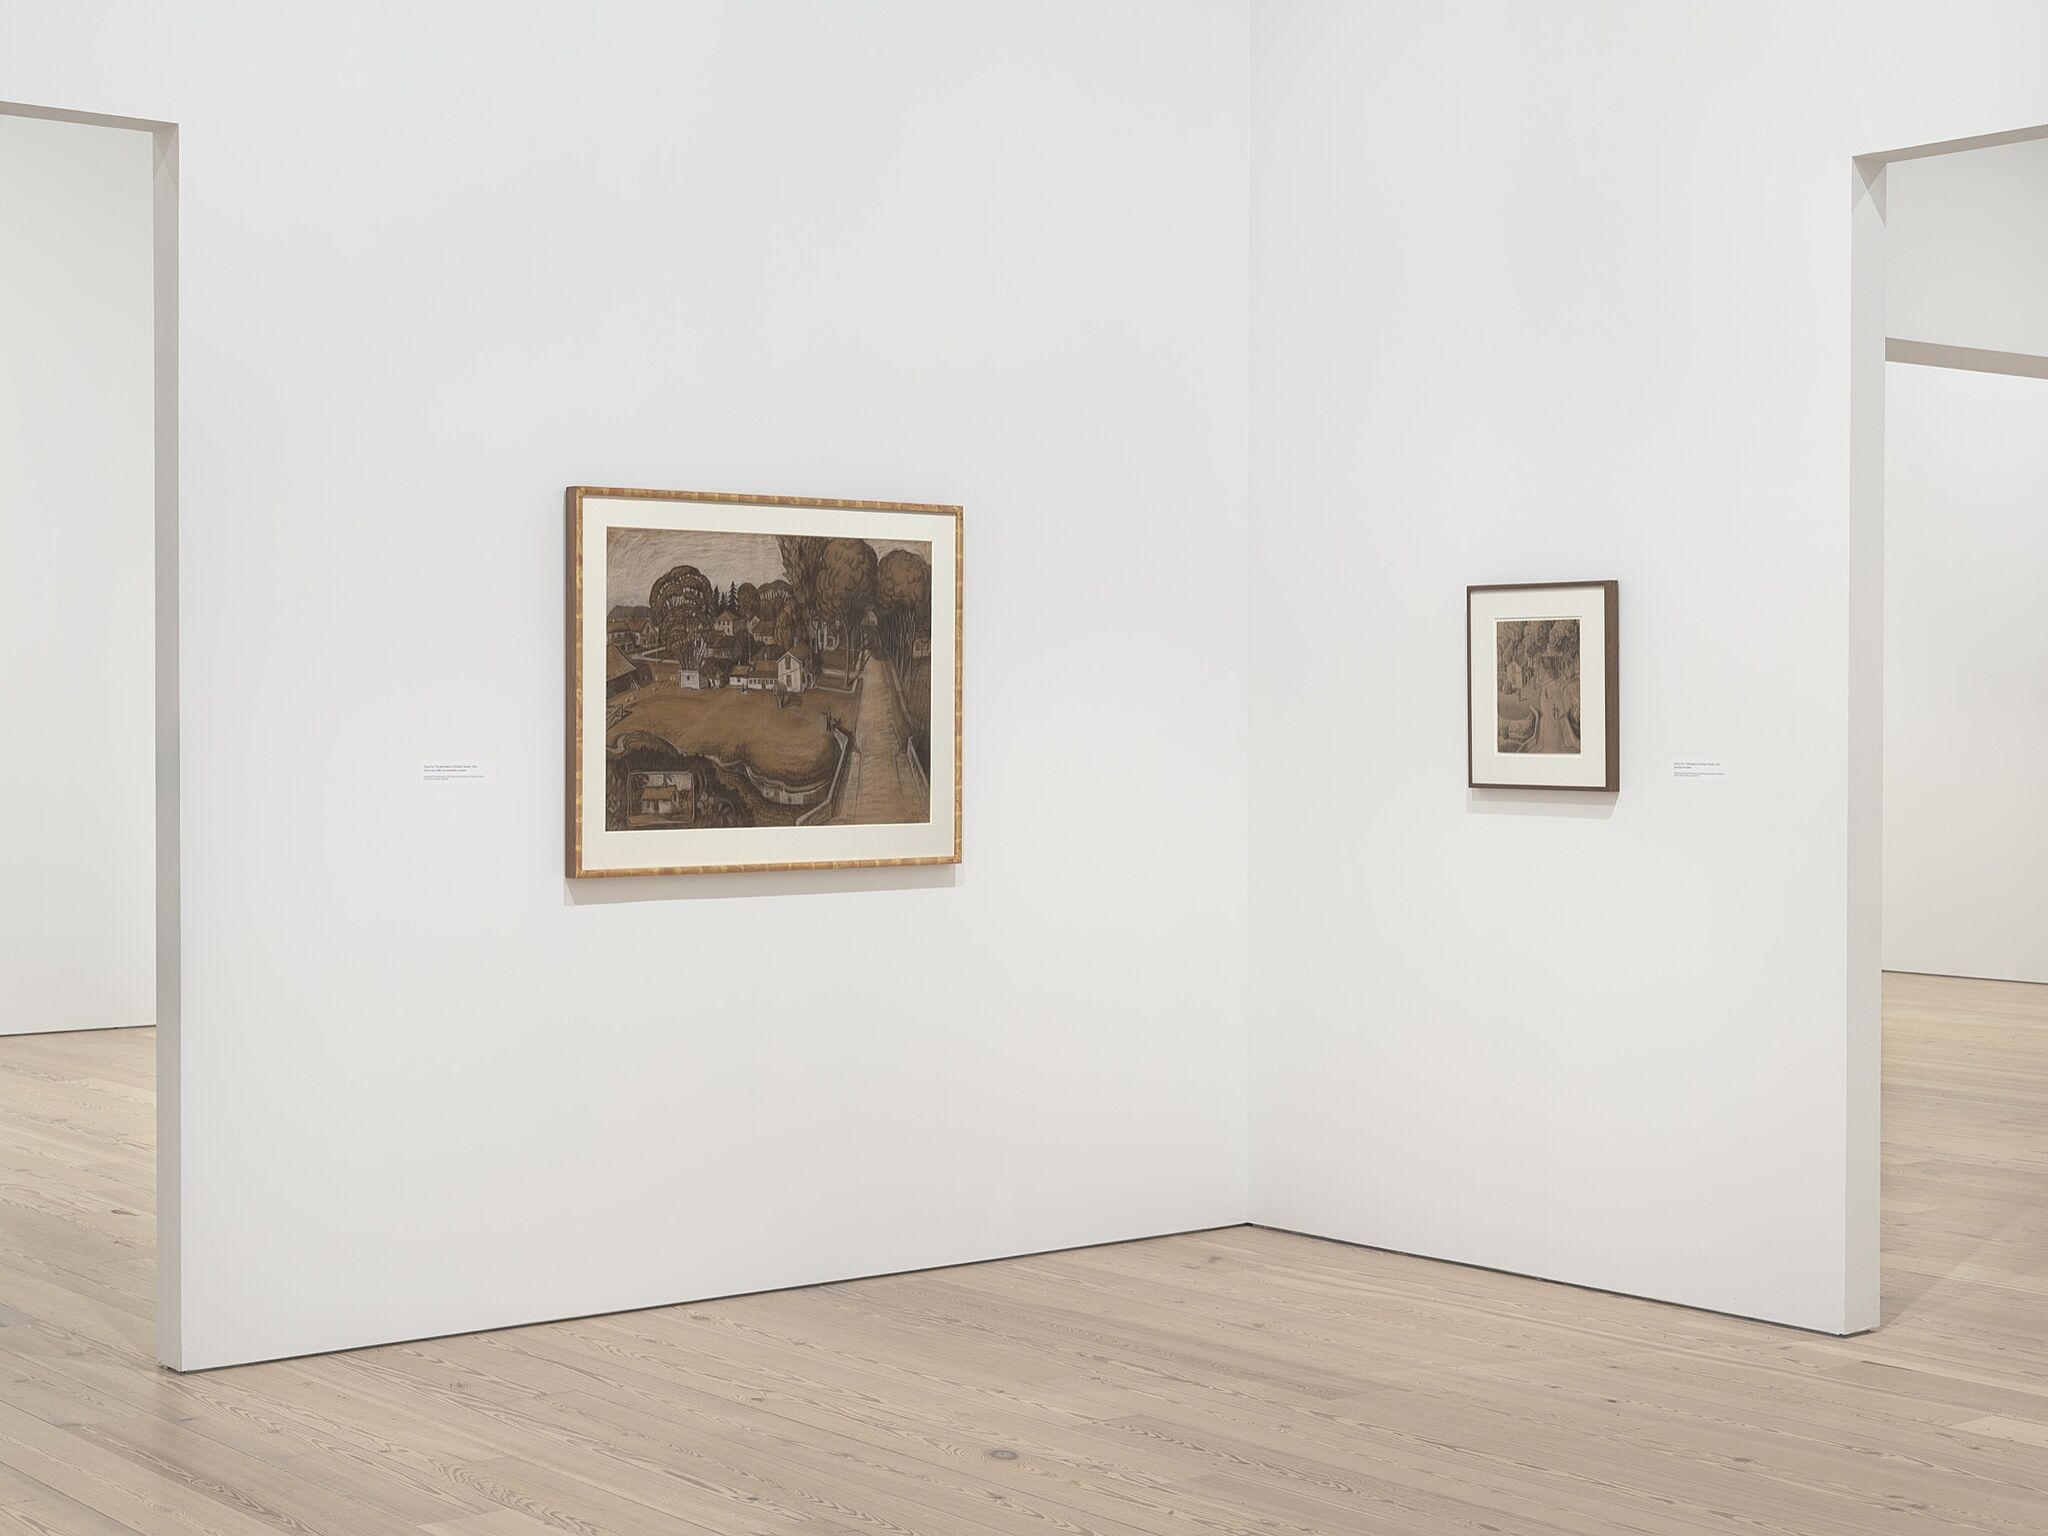 Two paintings in a white walled gallery.